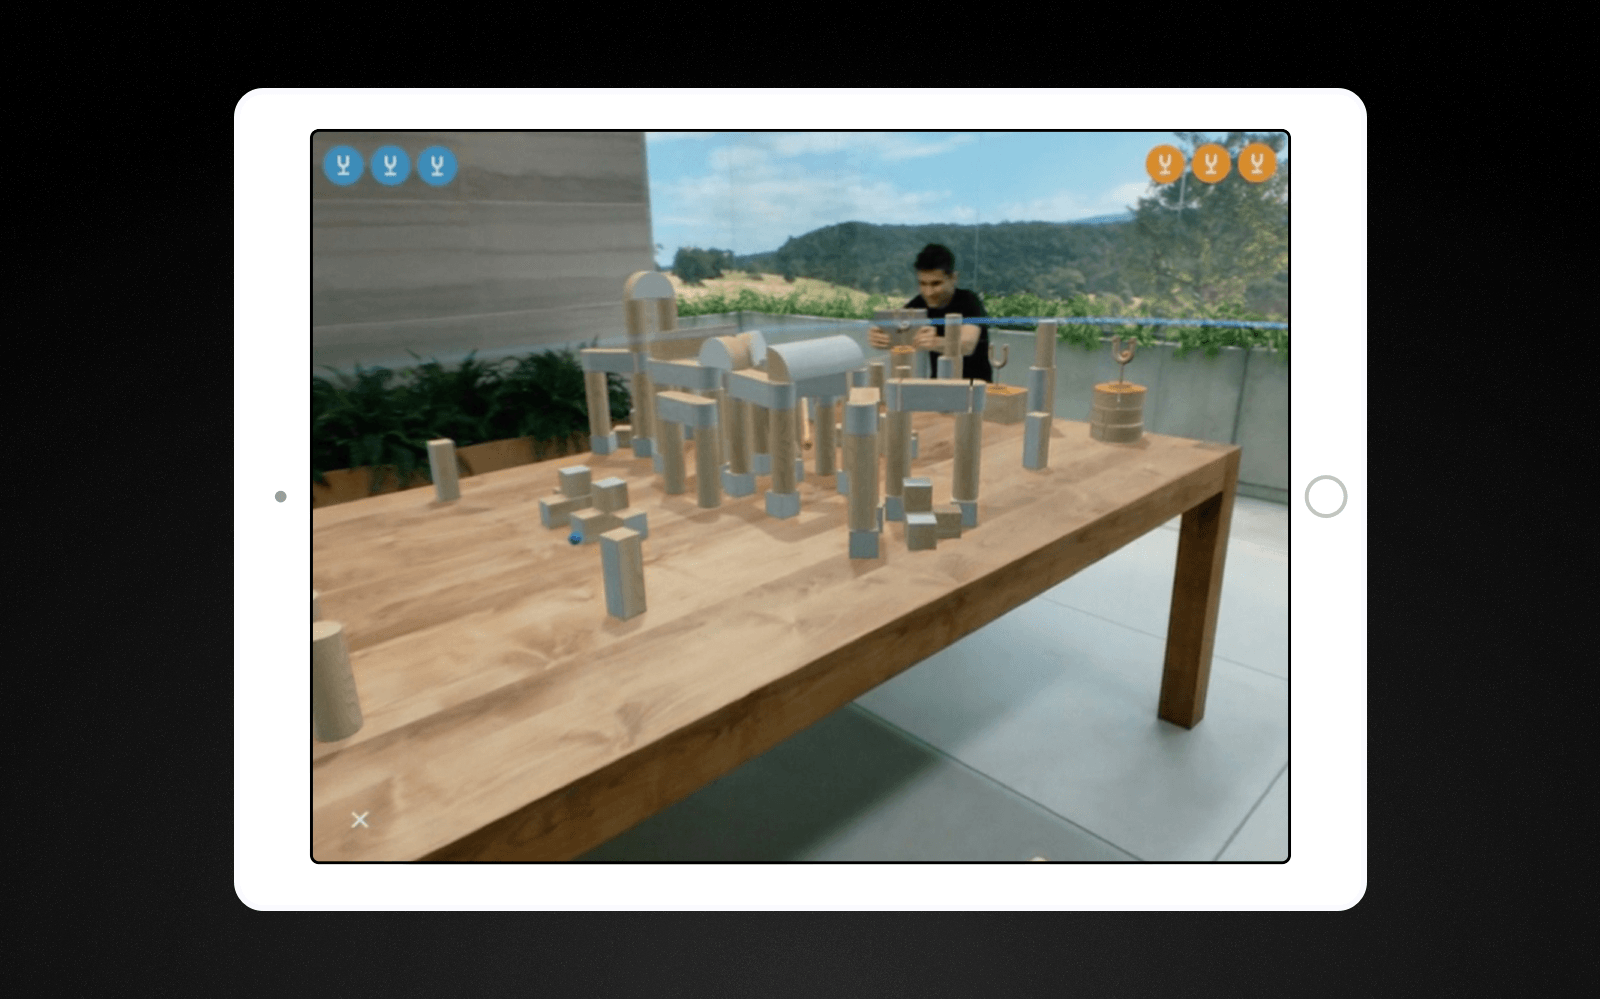 ARKit 2.0 shared experience